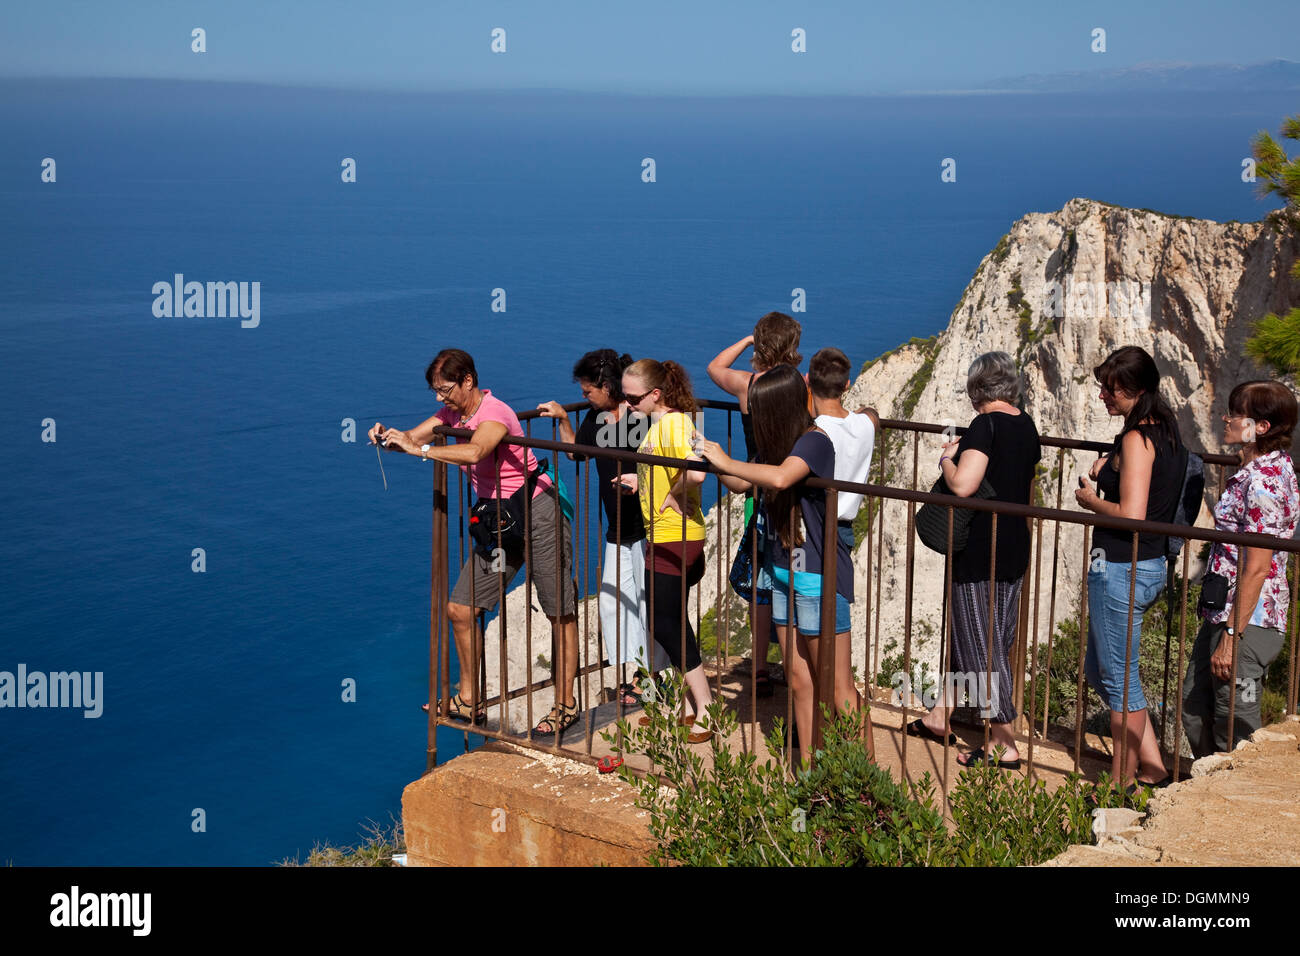 Tourists Taking Photos of Shipwreck Beach From The Viewpoint, Zakynthos (Zante) Greece - Stock Image